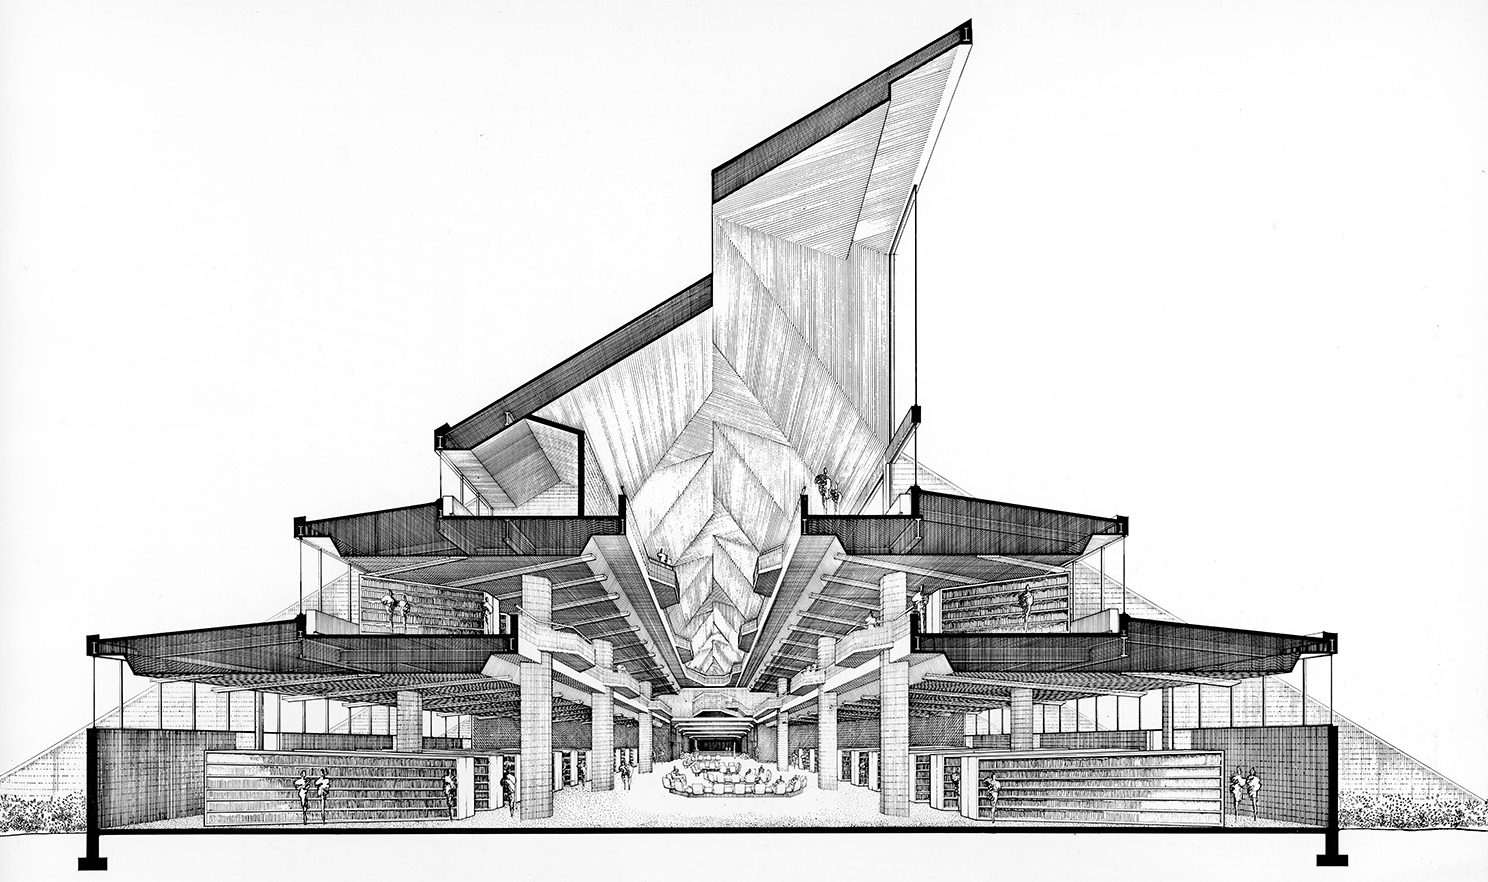 Rudolph's section-perspective of the library, looking down its main axis. A series of tall clerestory windows, rising prominently from the roof, bring in natural light. The building rises in three stages, with each floor getting smaller than the one below—reflecting the library's functional space needs. Image © The Estate of Paul Rudolph, The Paul Rudolph Heritage Foundation.